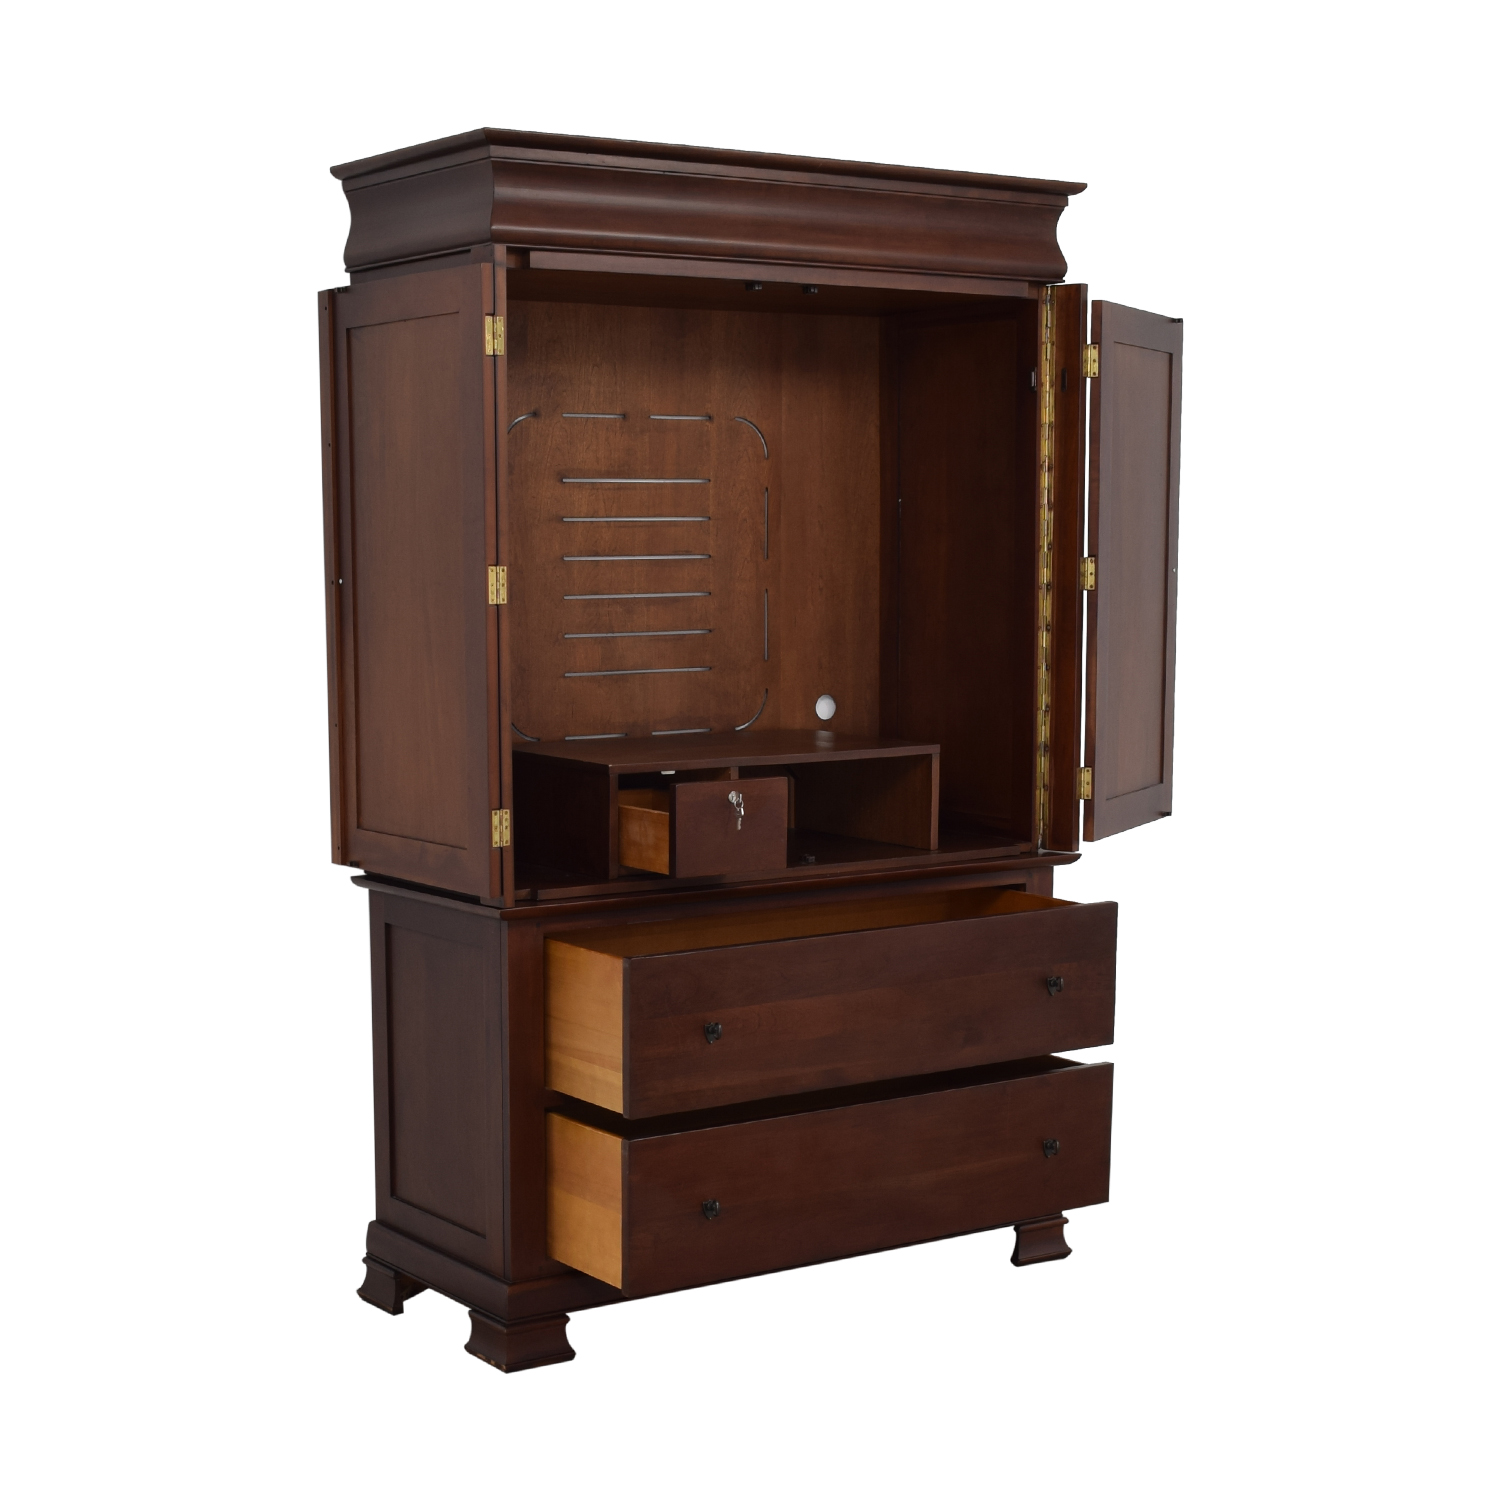 A-America Wood Furniture A-America Wood Furniture Wood Entertainment Armoire price